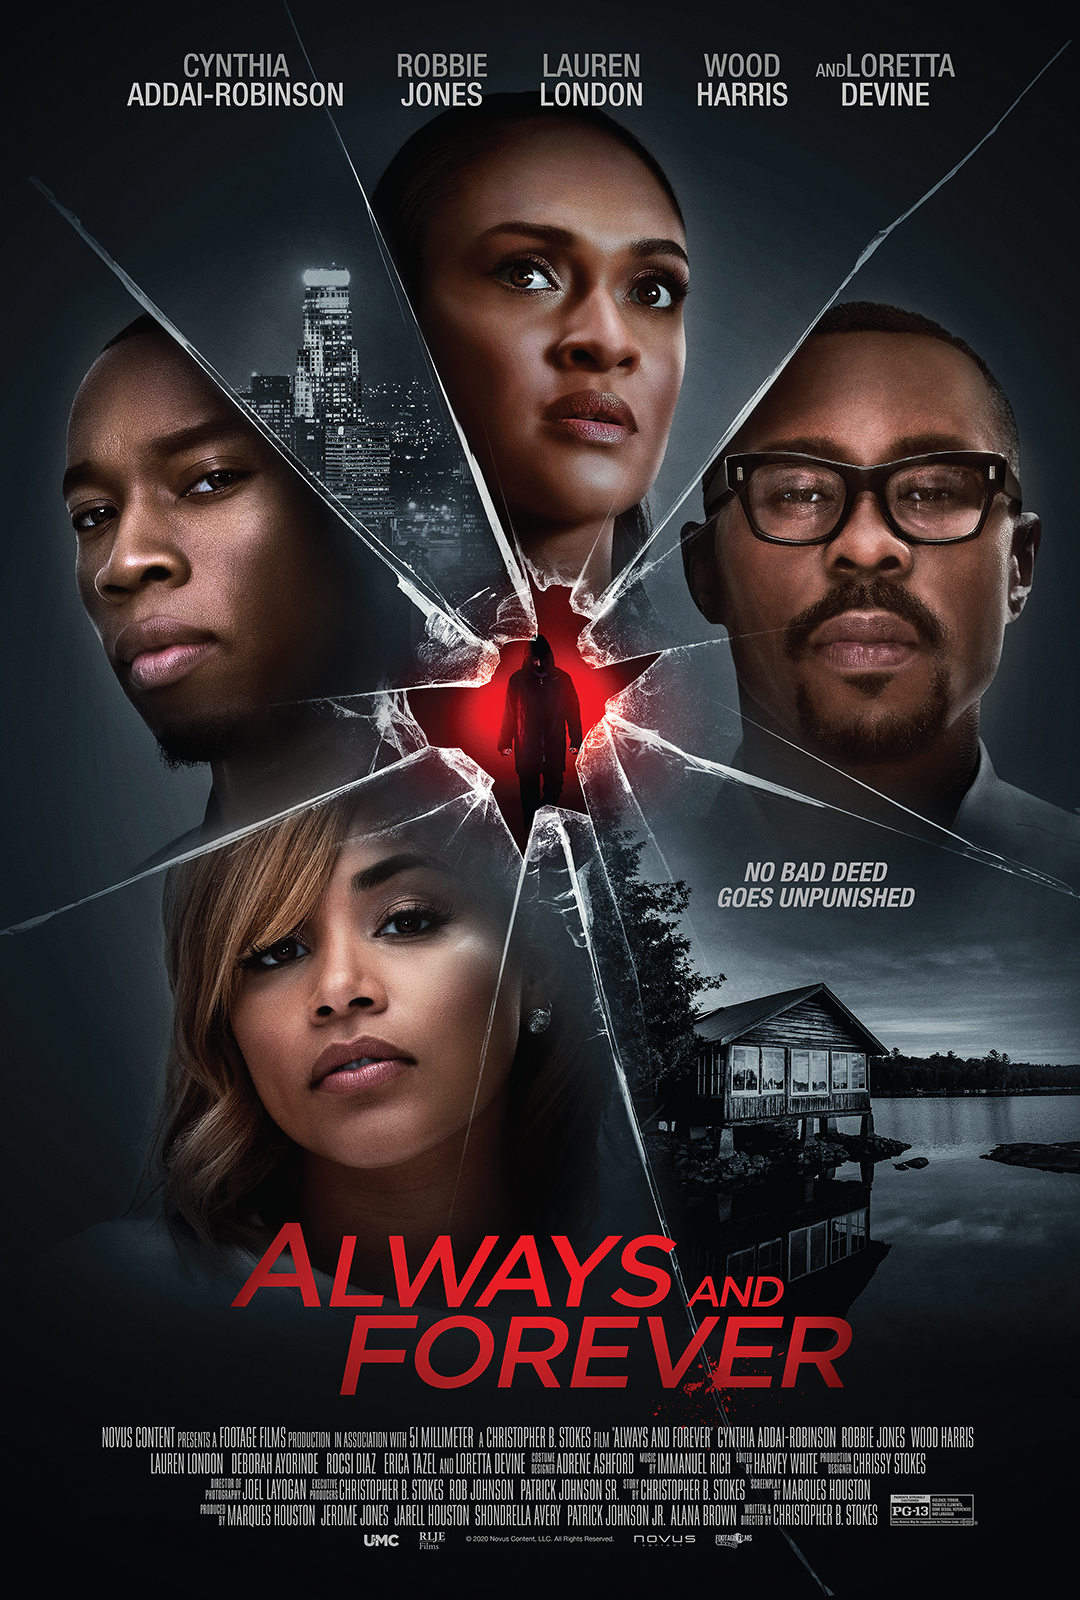 Robbie Jones, Cynthia Addai-Robinson, and Lauren London in Always and Forever (2020)